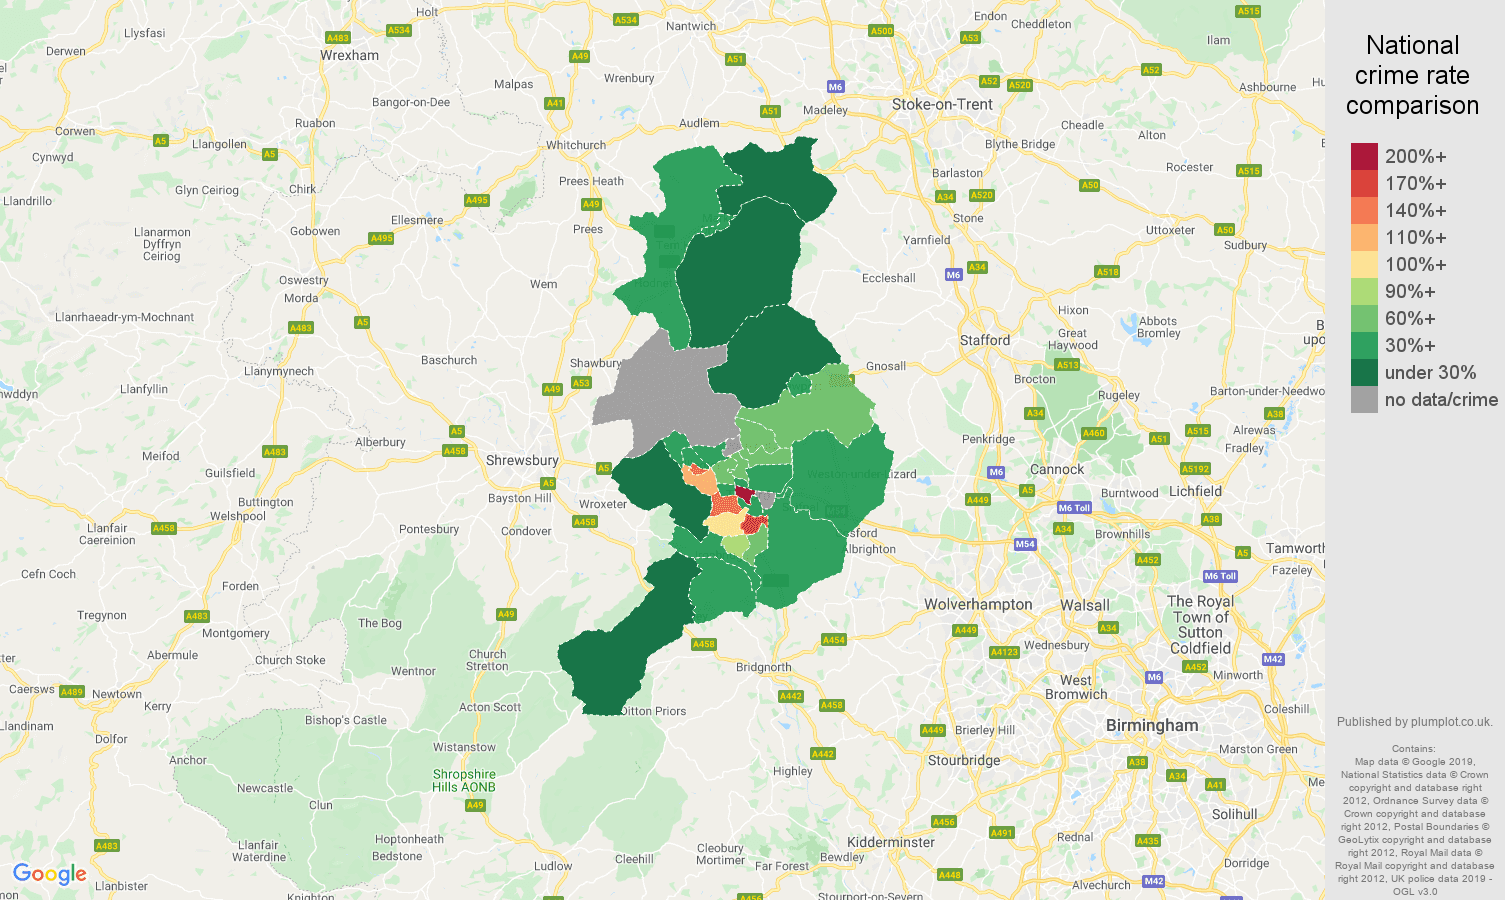 Telford public order crime rate comparison map